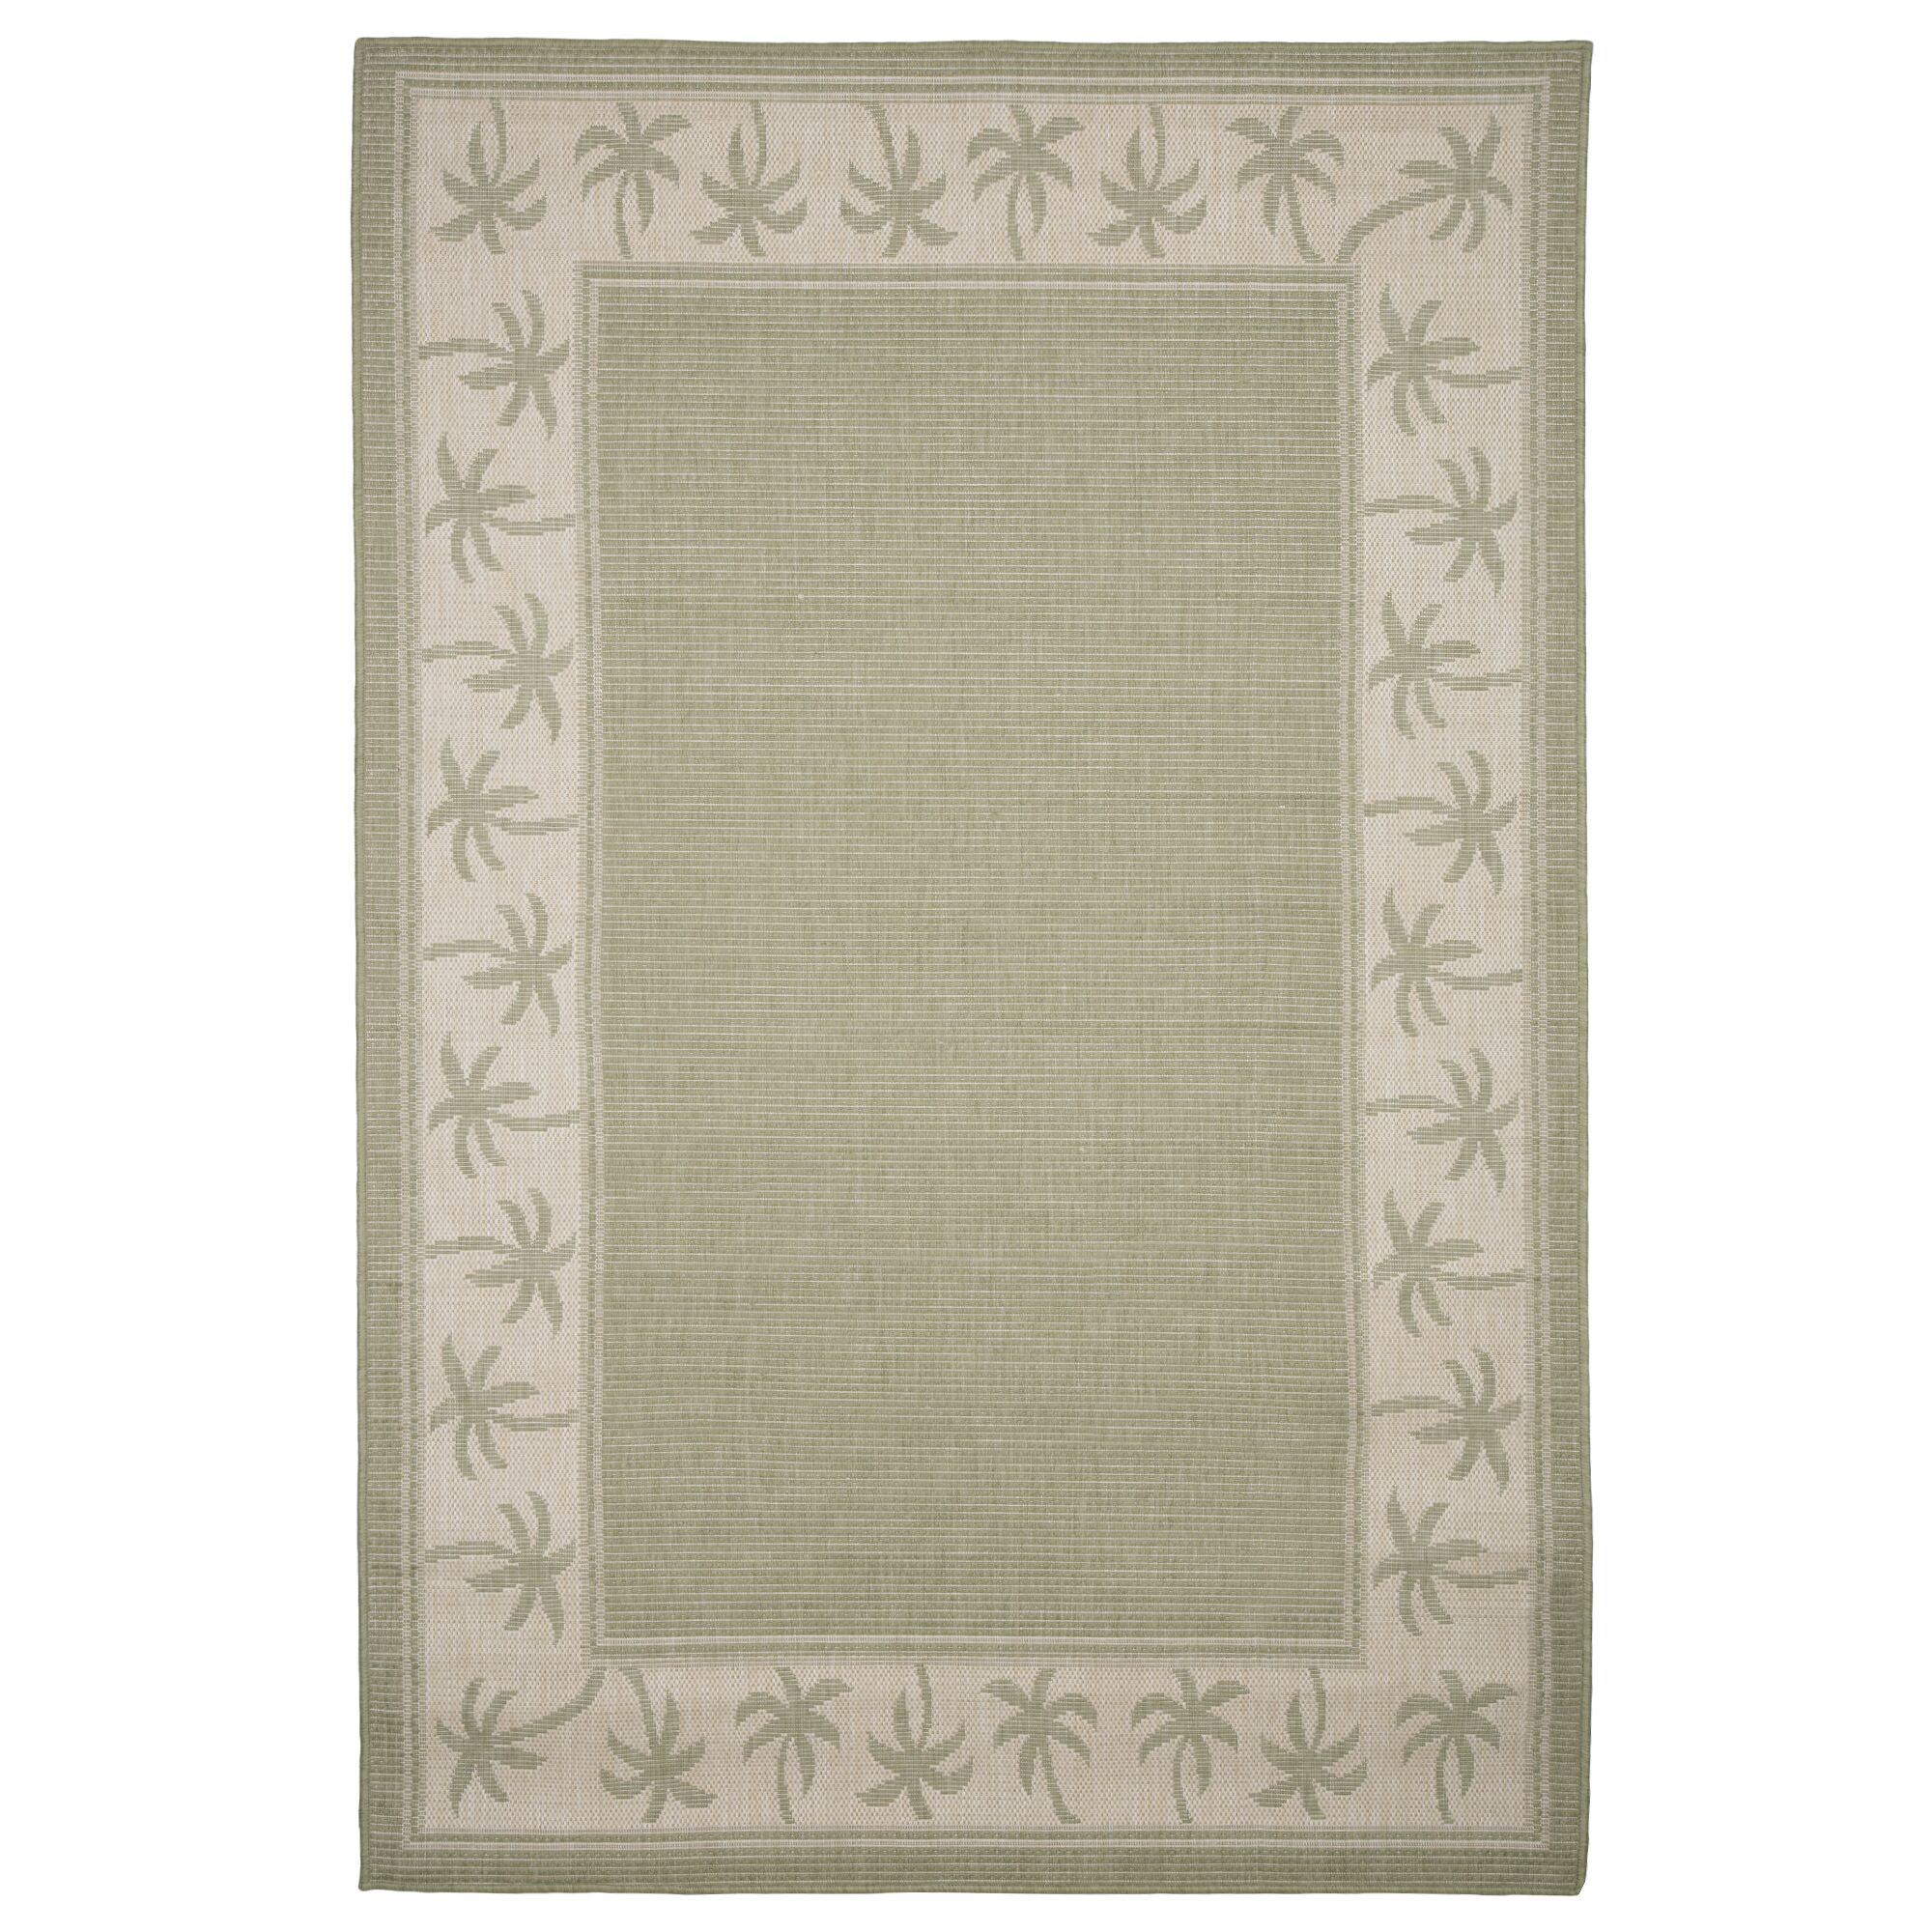 Green/Beige Indoor/Outdoor Area Rug Rug Size: Rectangle 8' x 10'